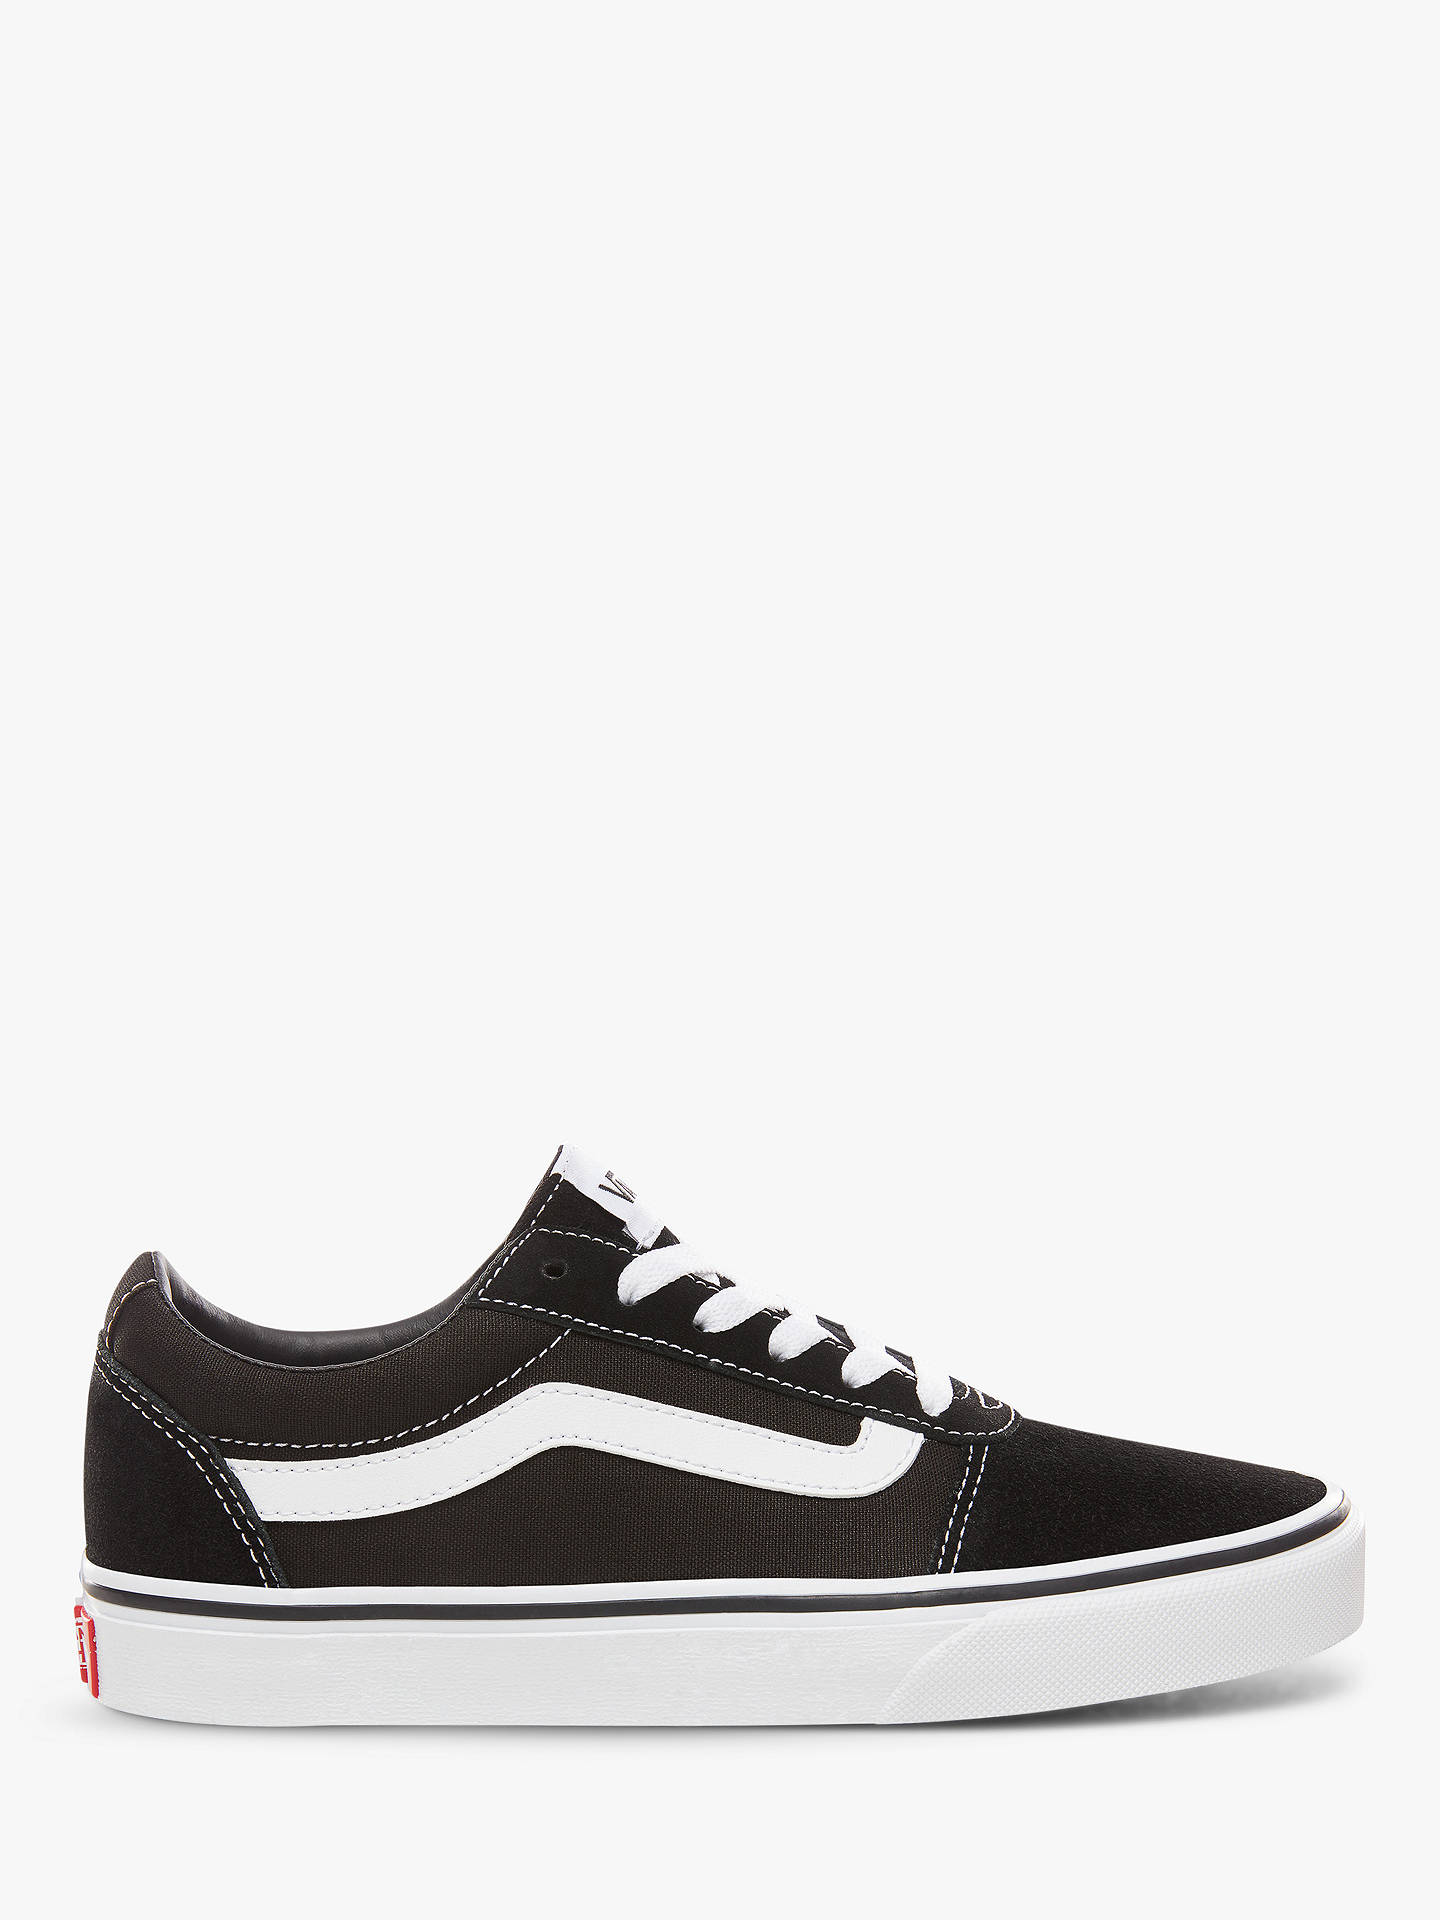 04db4f3c8aa Vans Ward Lace Up Trainers at John Lewis   Partners